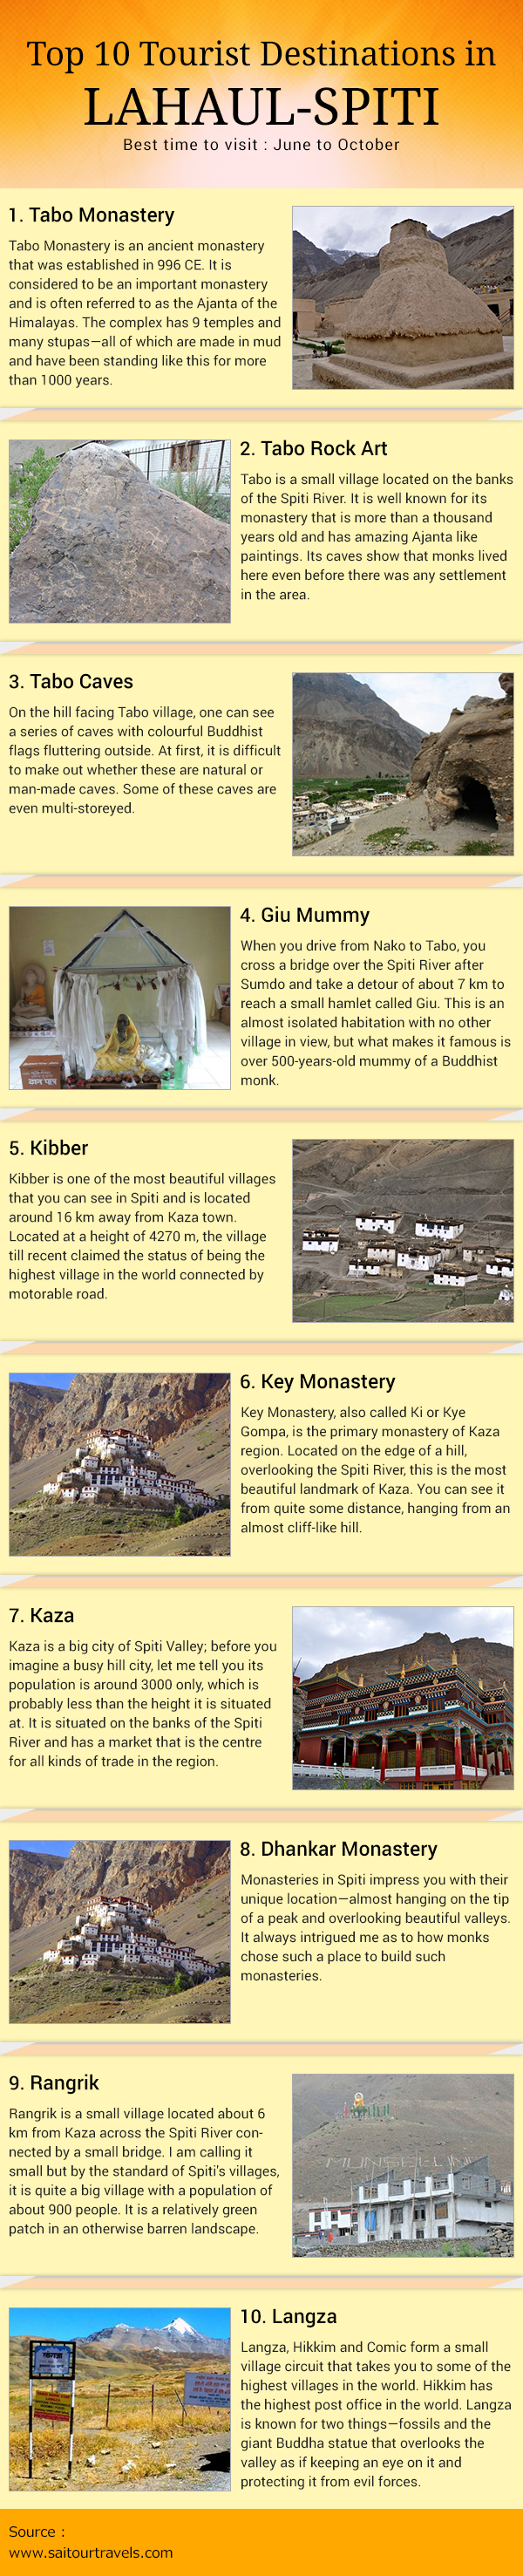 Top 10 Tourist Destinations in Lahaul Spiti